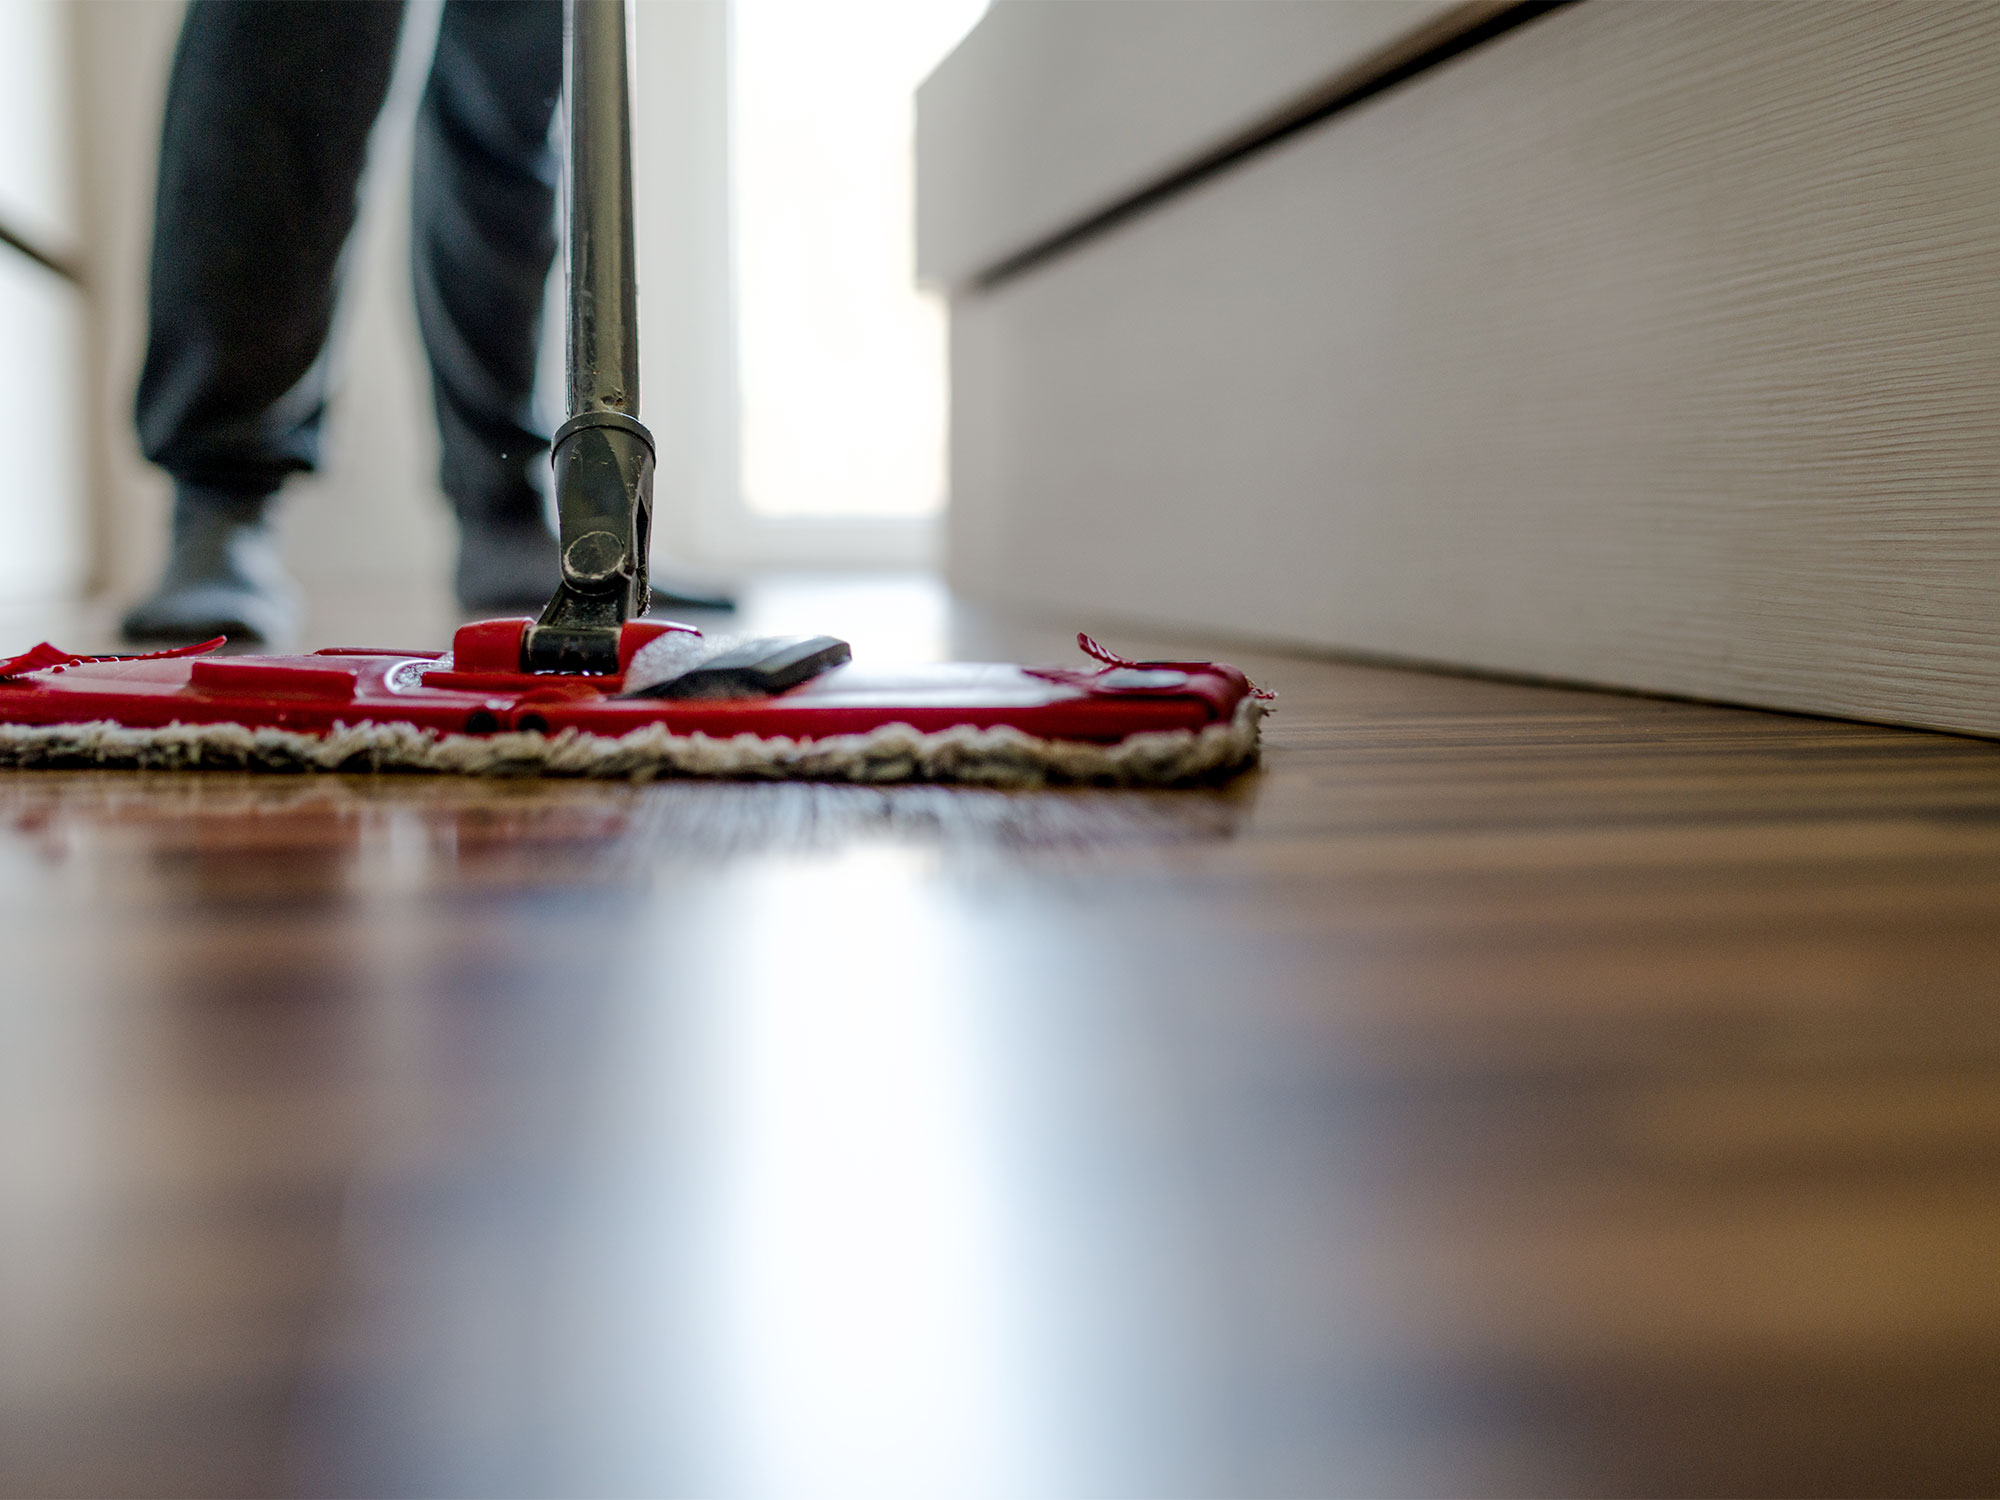 mopping-wooden-floorboards_2000x1500